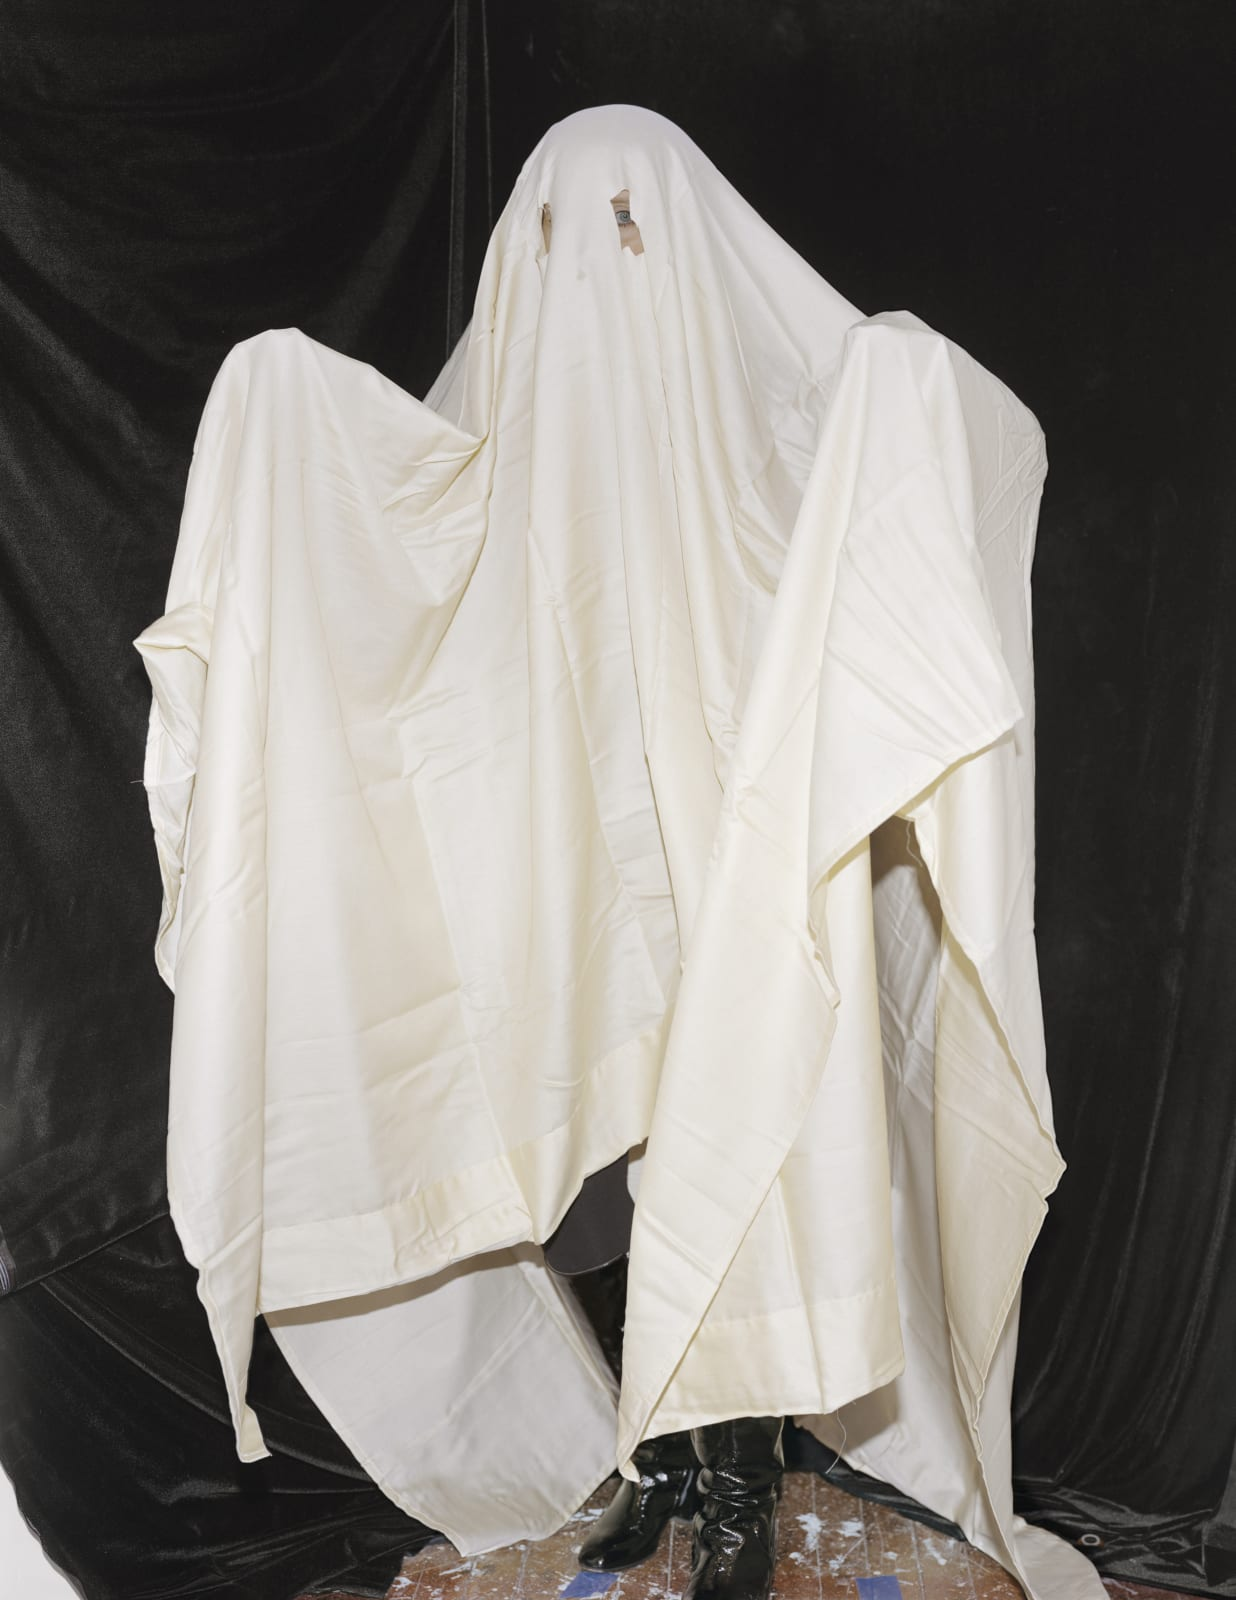 Whitney Hubbs Untitled (Ghost), 2021